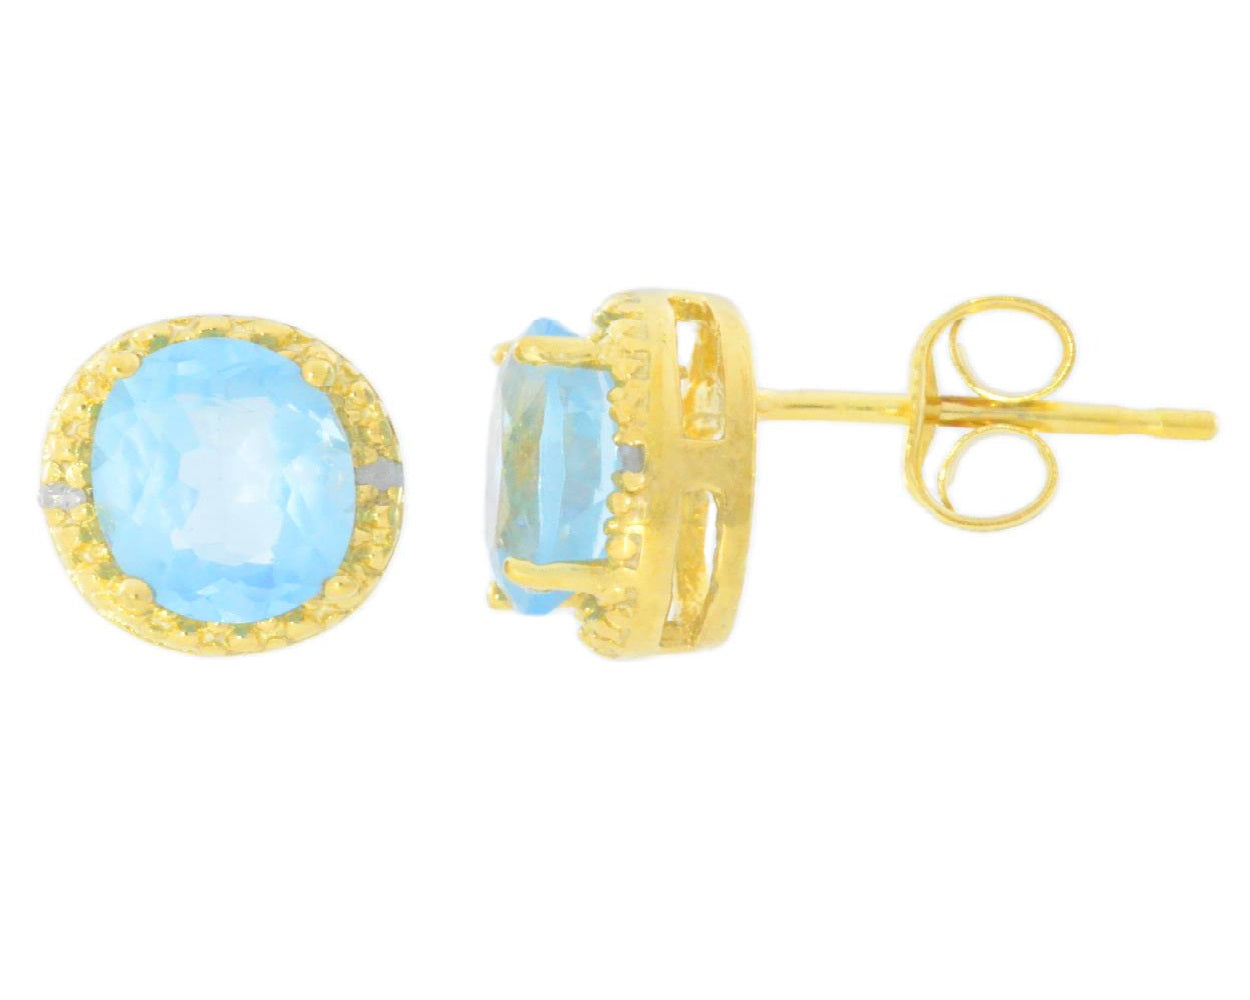 2 Ct Blue Topaz & Diamond Round Stud Earrings 14Kt Yellow Gold Plated